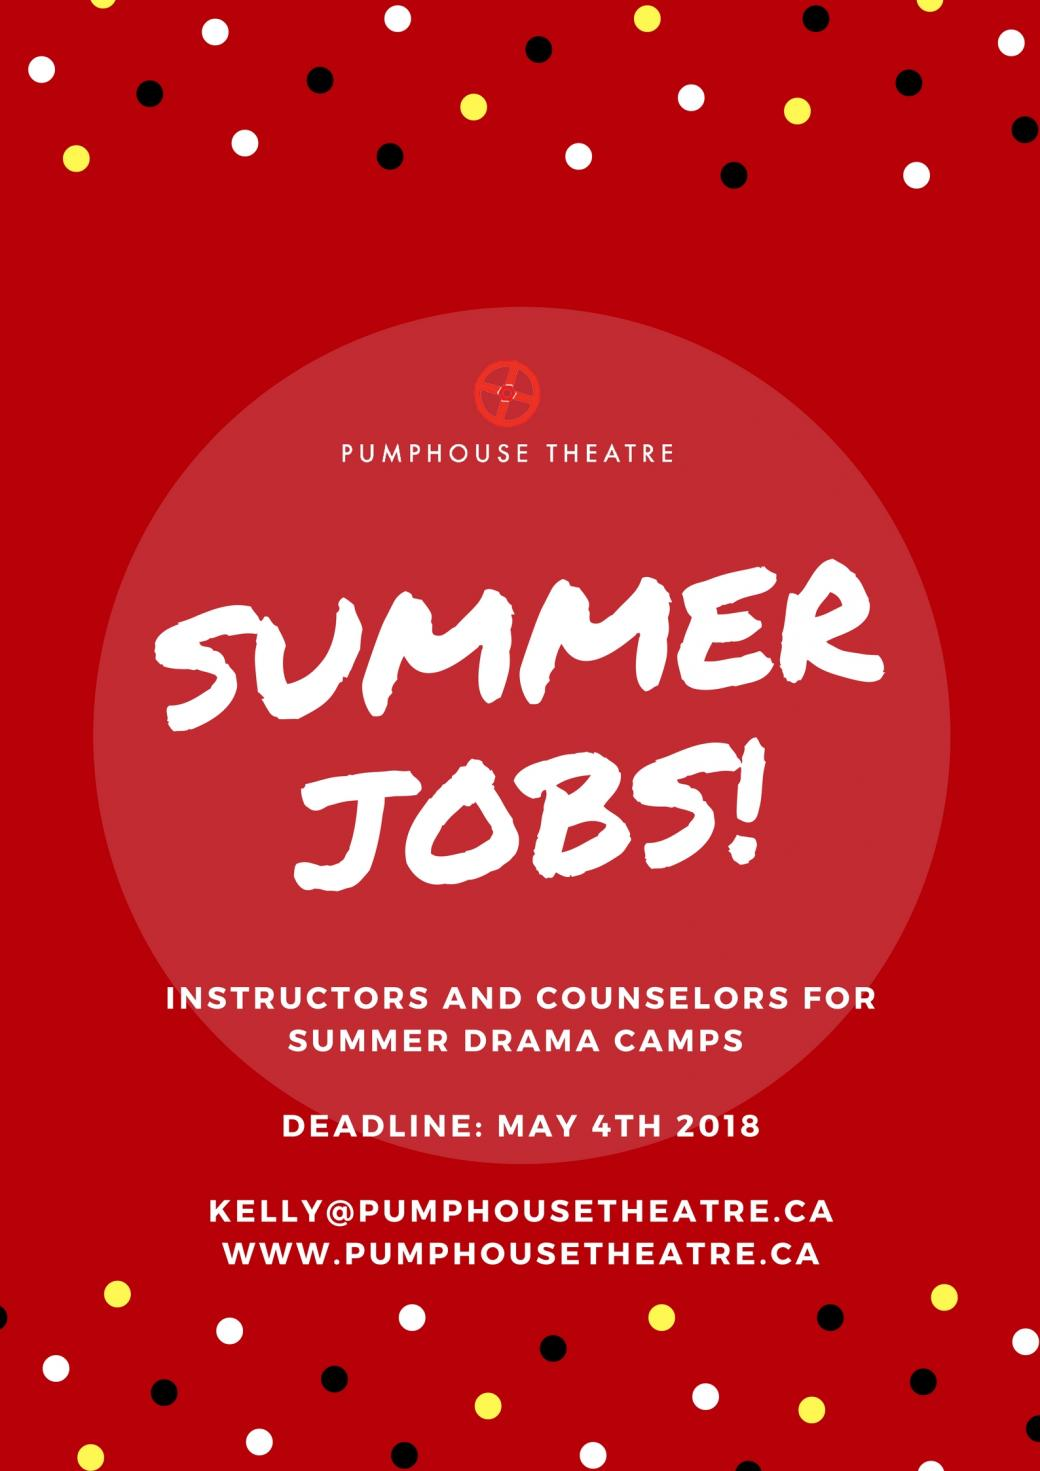 Pumphouse Theatre Summer Camp Job Opportunity: Counselors